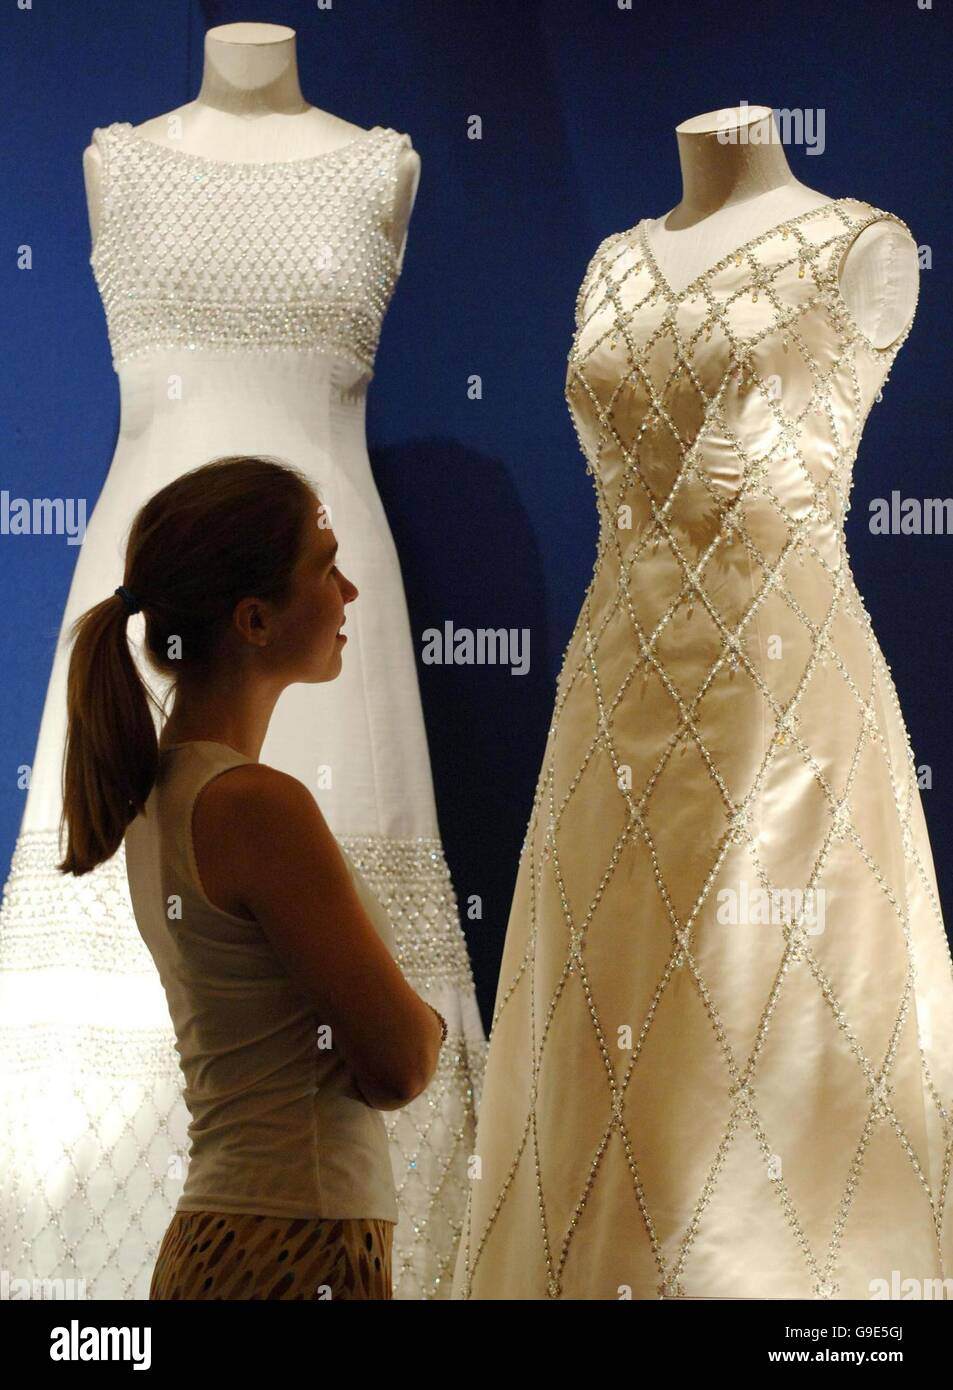 Beaded Gown Stockfotos & Beaded Gown Bilder - Alamy